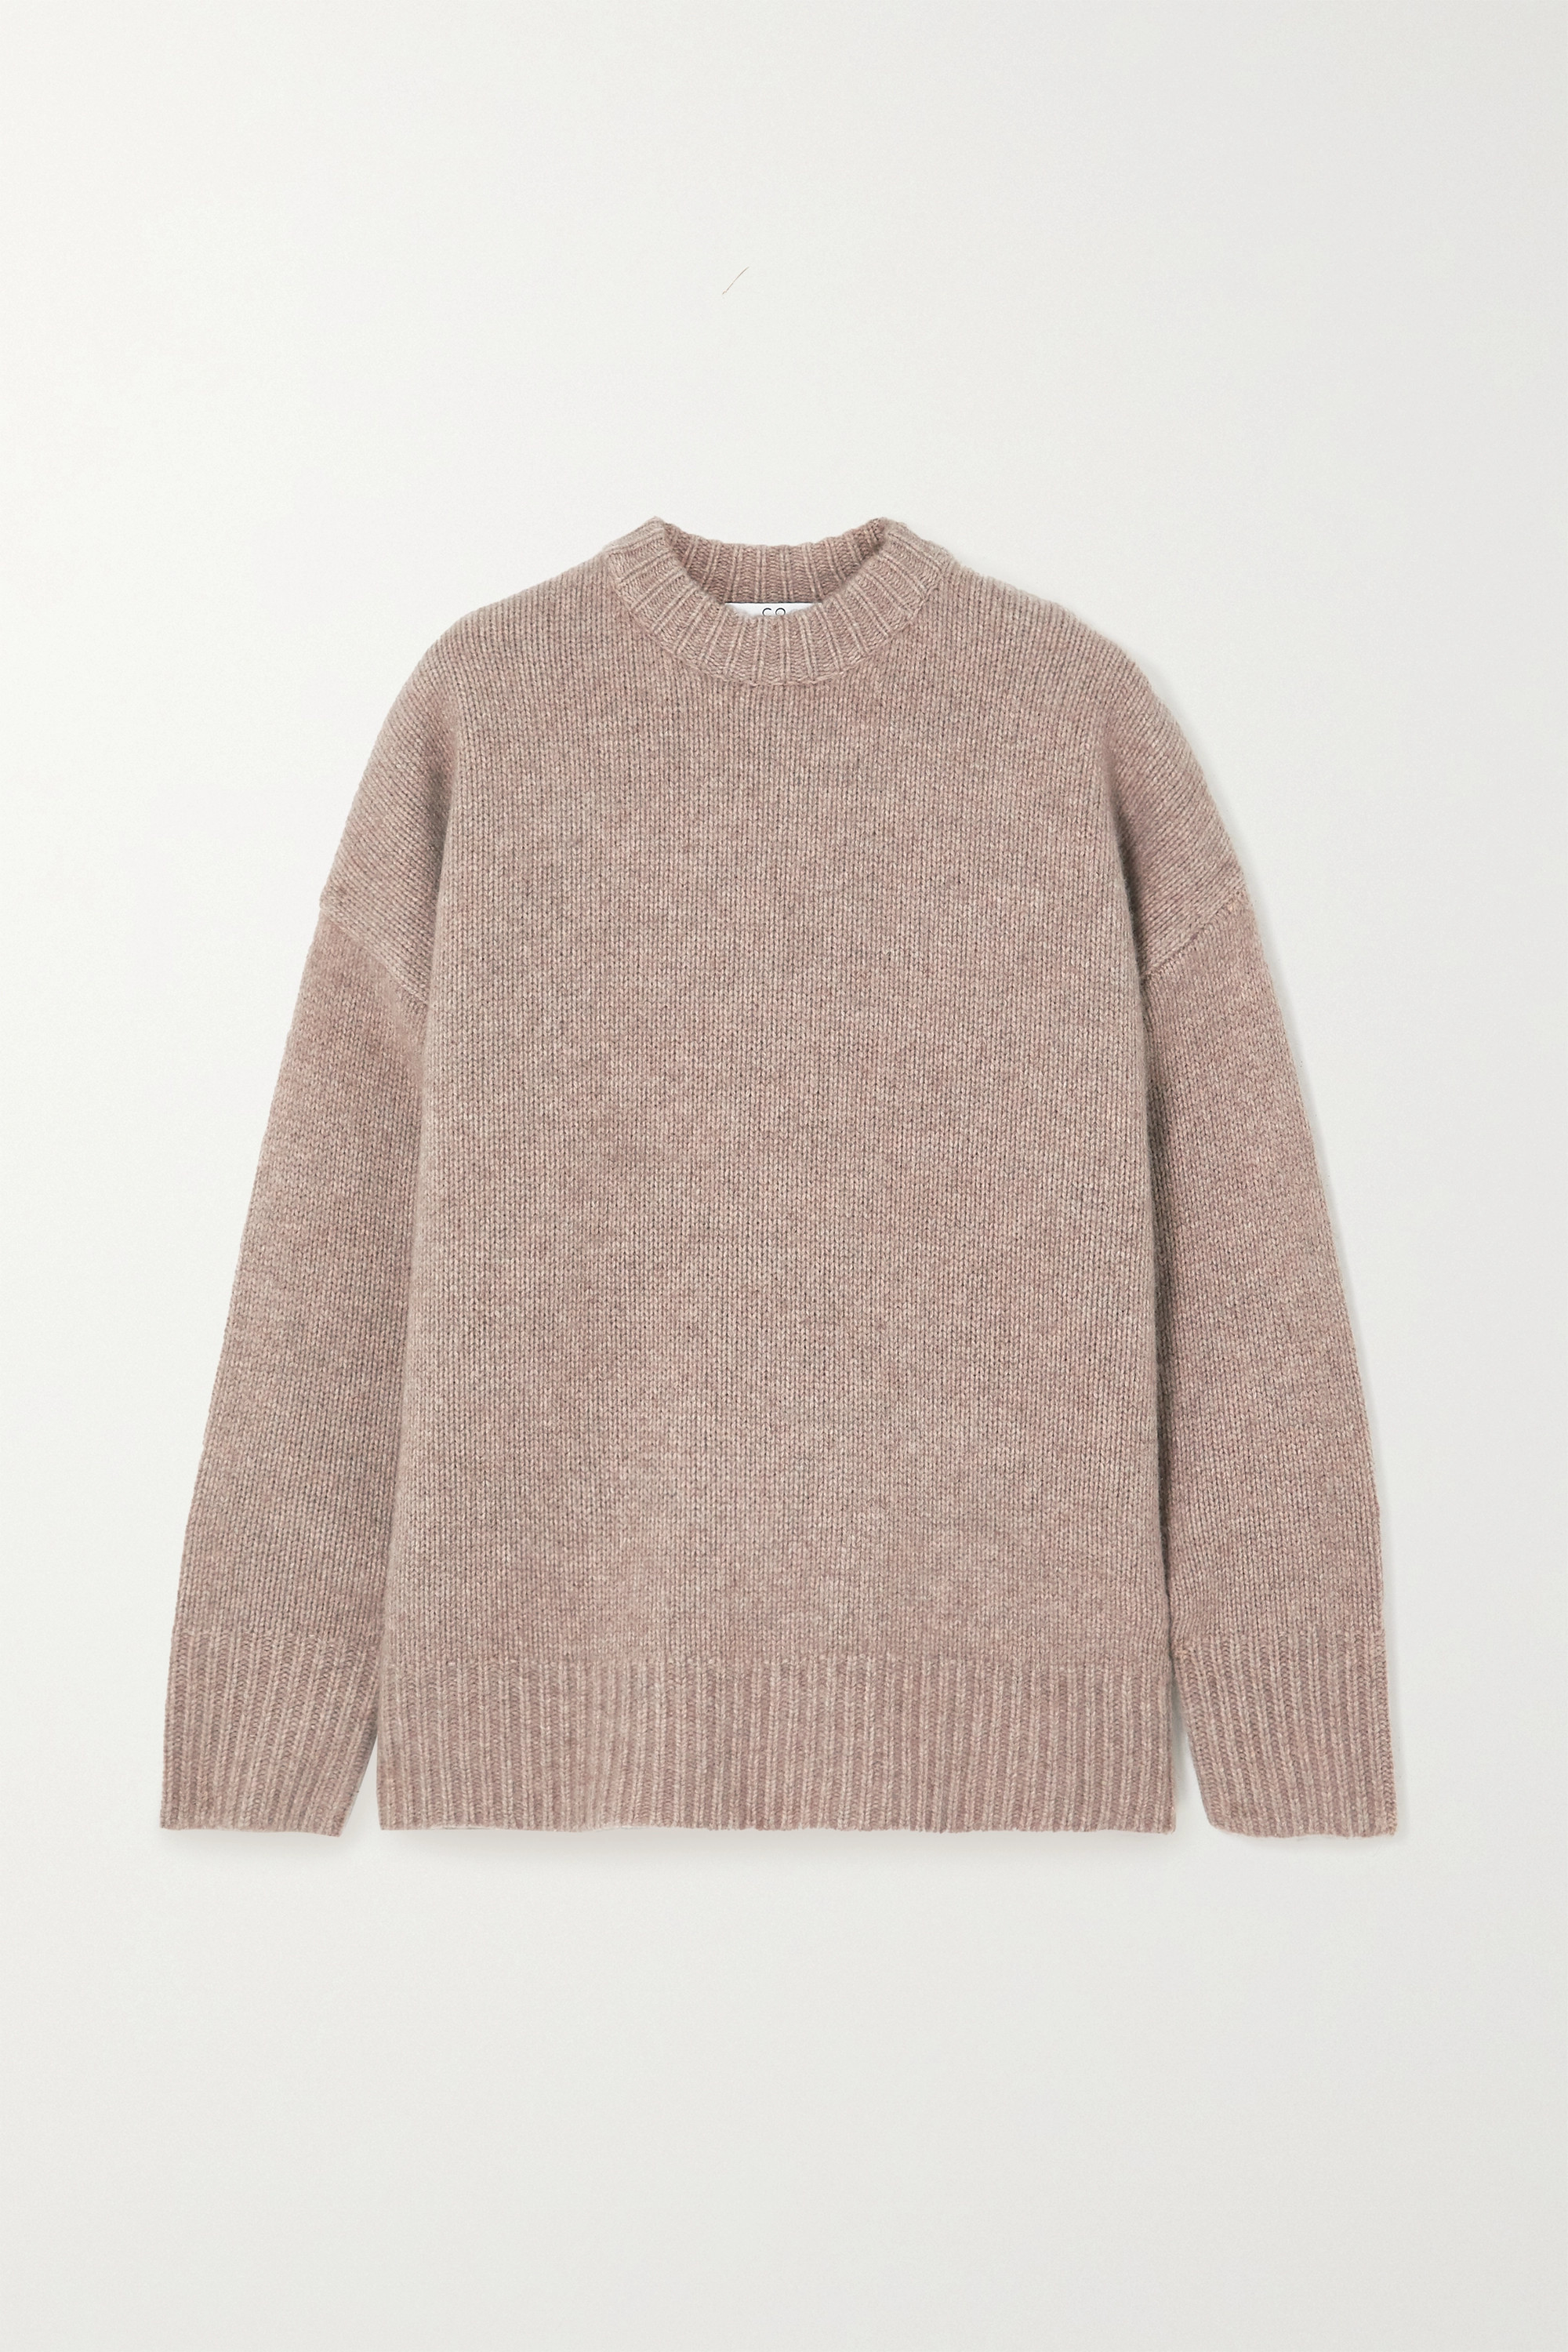 Co Cashmere sweater